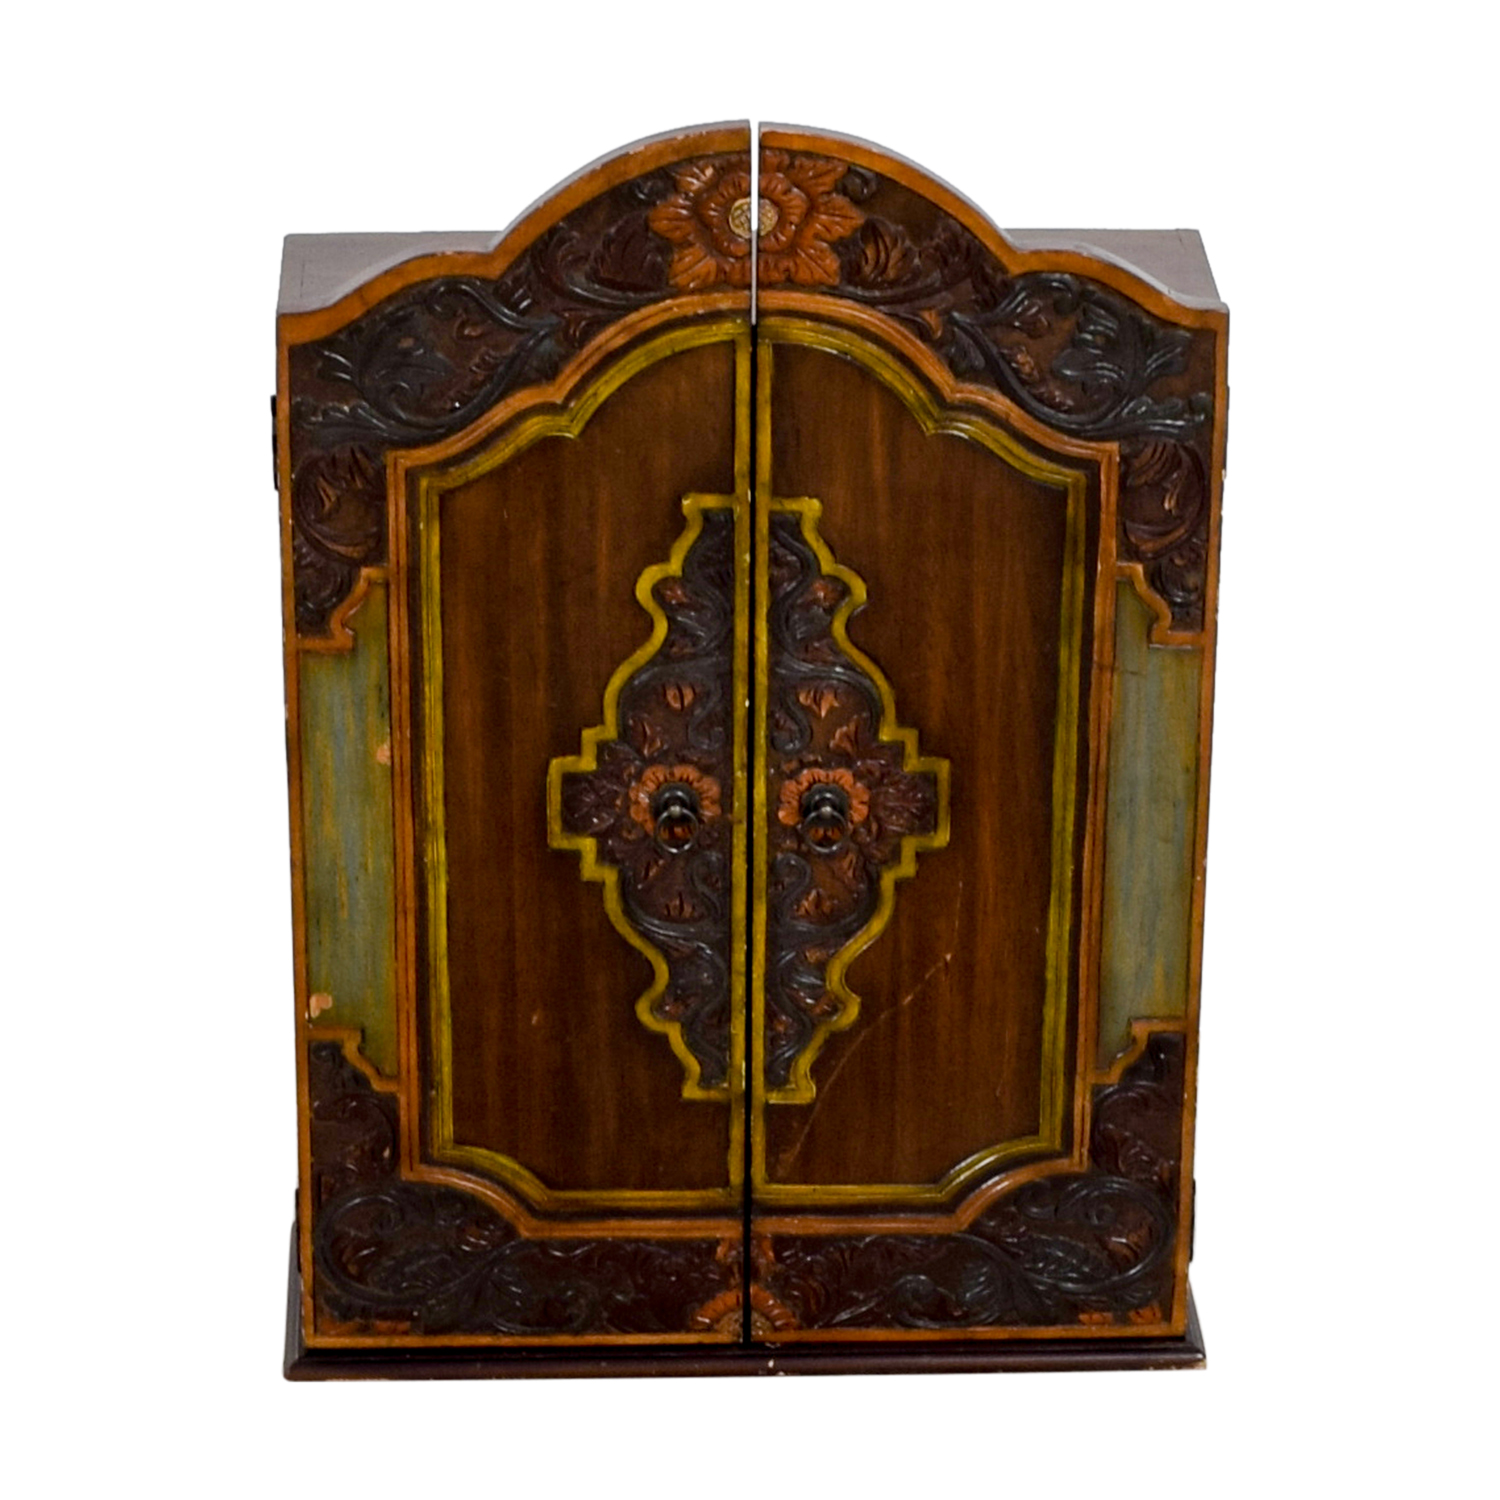 Pier 1 Imports Pier 1 Imports Carved Wood Jewelry Cabinet used